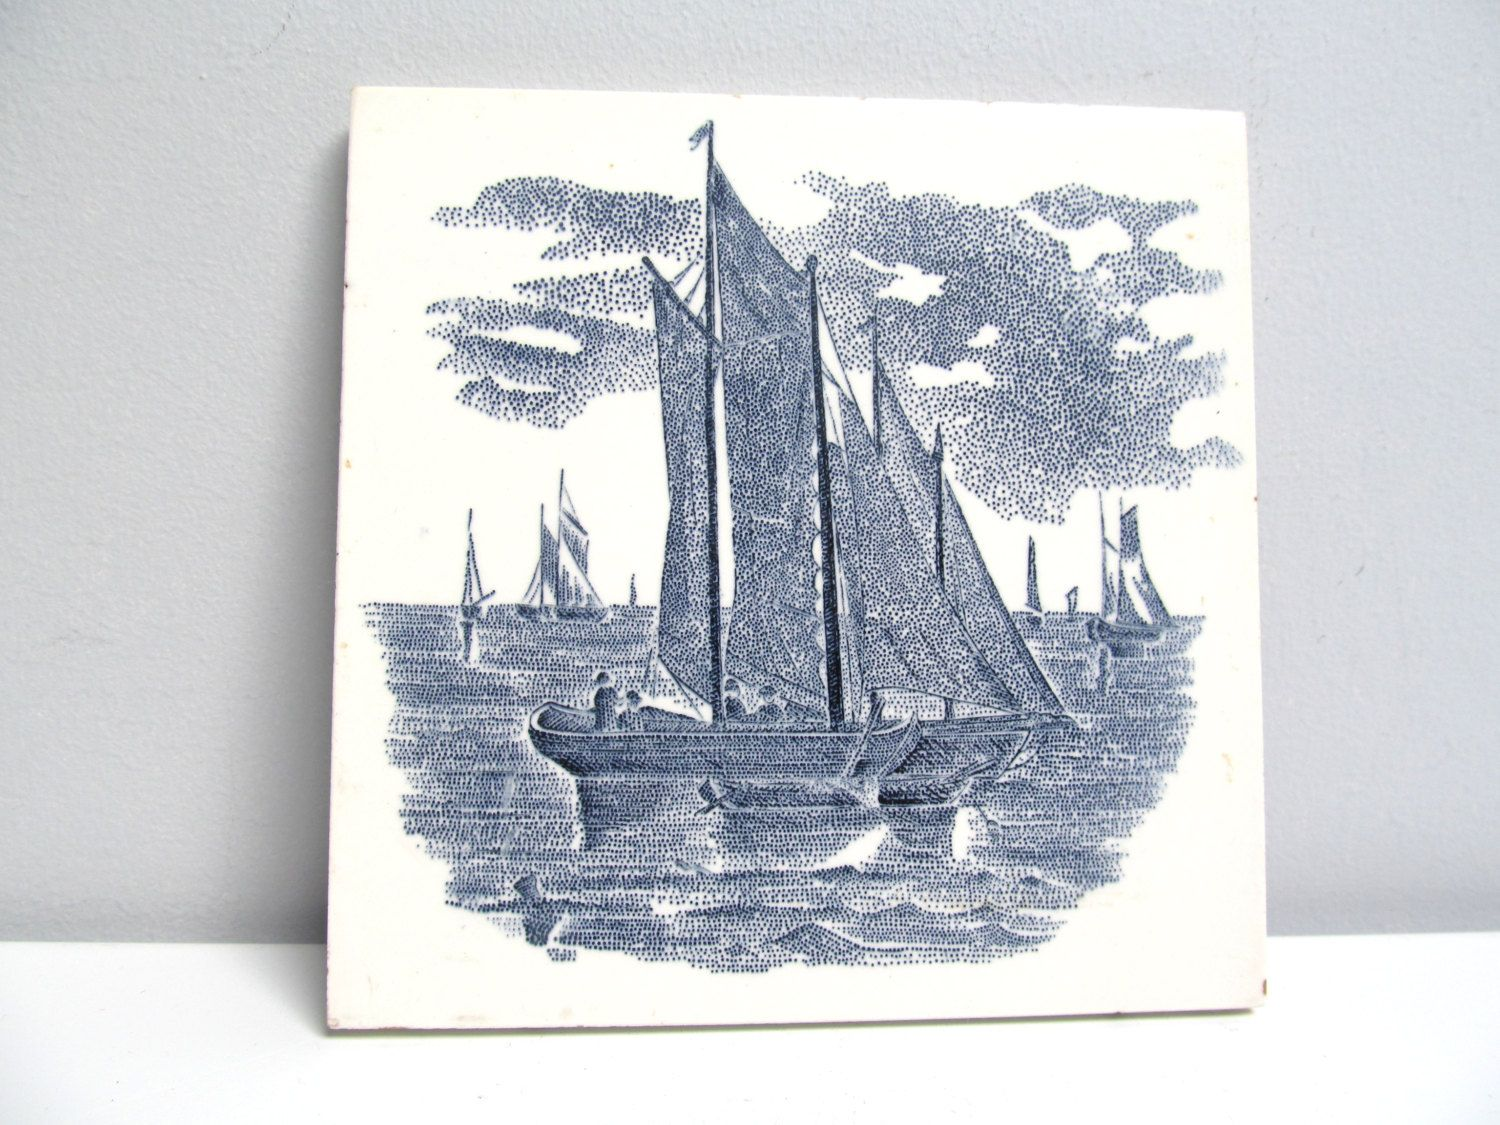 Vintage ceramic tile trivet delft blue dutch holland belgium vintage ceramic tile trivet delft blue dutch holland belgium pointillism boats sailing sea fireplace width 152 cm6 in dailygadgetfo Image collections